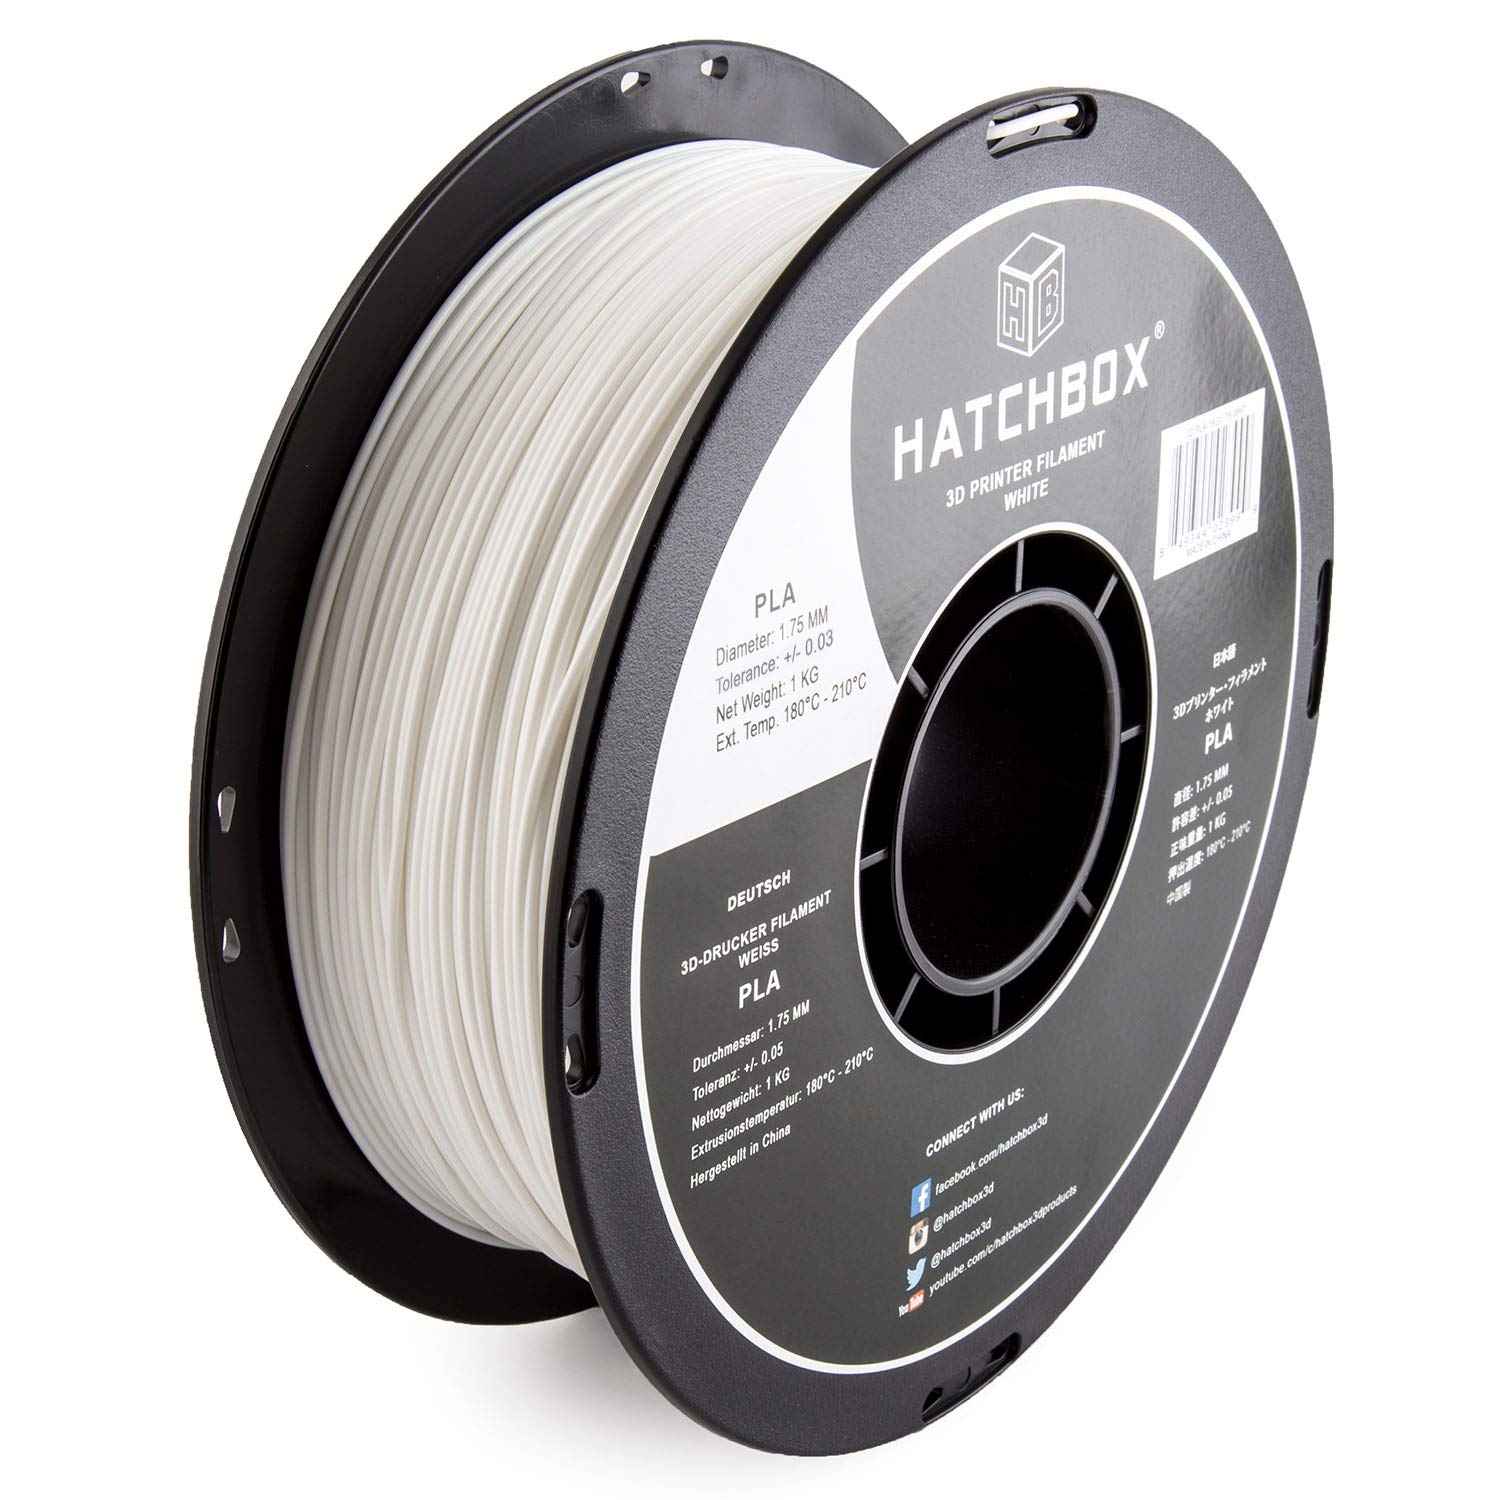 HATCHBOX 1.75mm White PLA 3D Printer Filament - 1kg Spool ...